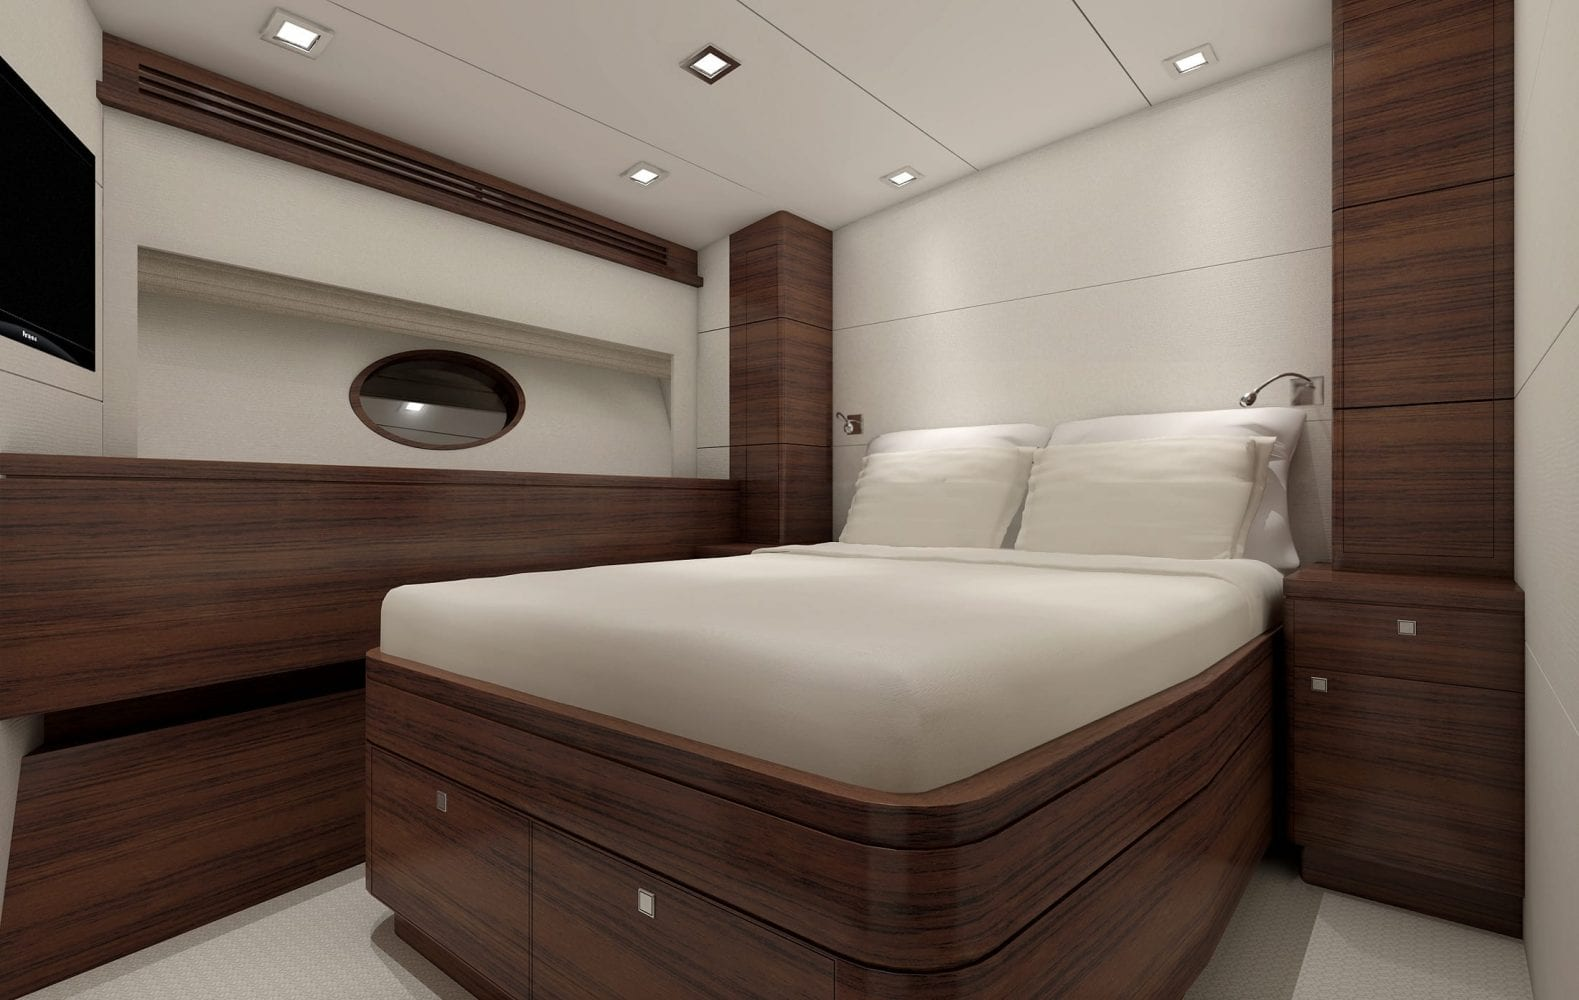 94.5 Seaforce IX Bonny Read Guest Stateroom Rendering